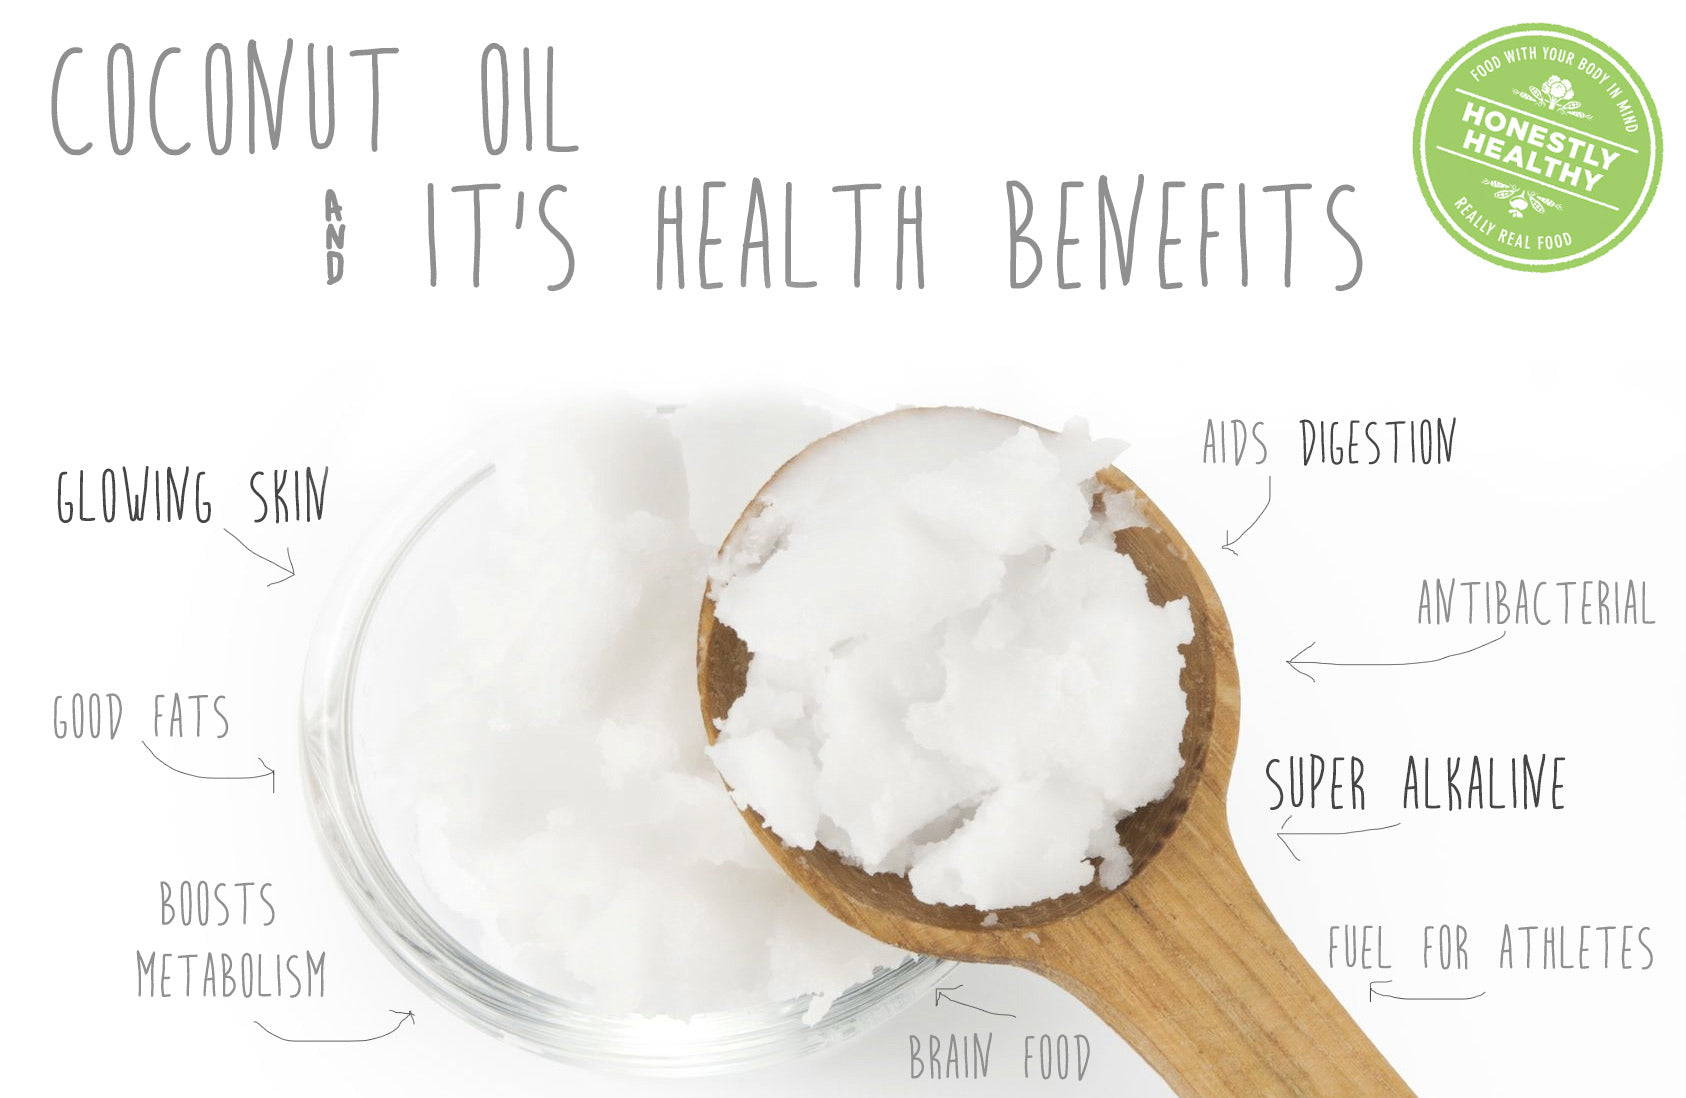 Coconut Oil At A Glance - What Are The Benefits? - Honestly Healthy